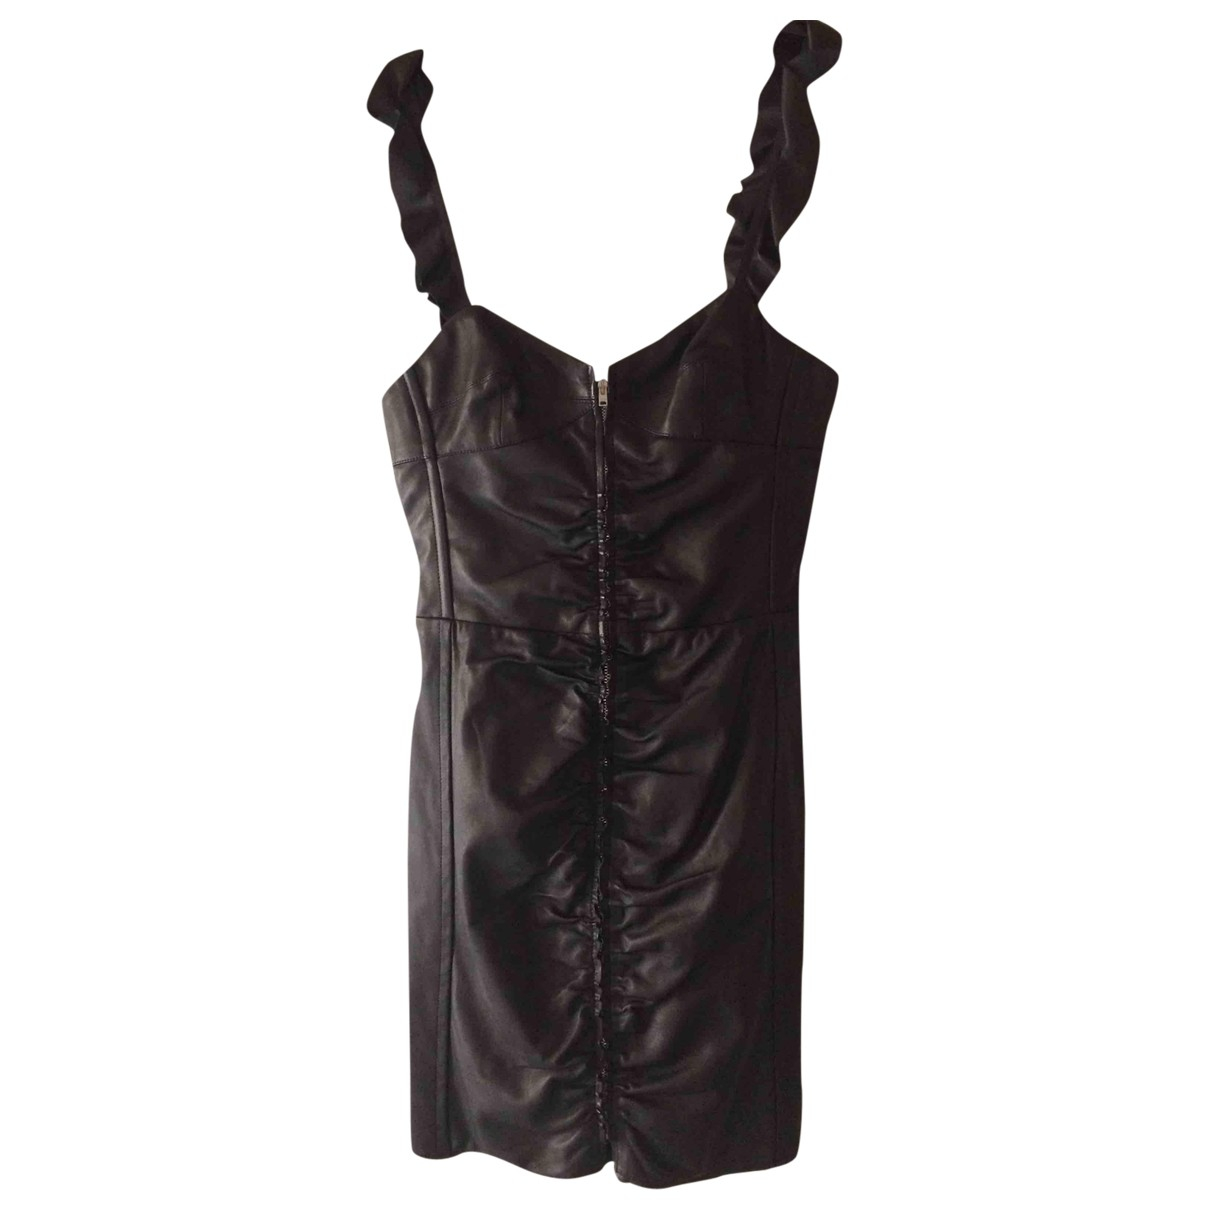 Isabel Marant \N Black Leather dress for Women 36 FR